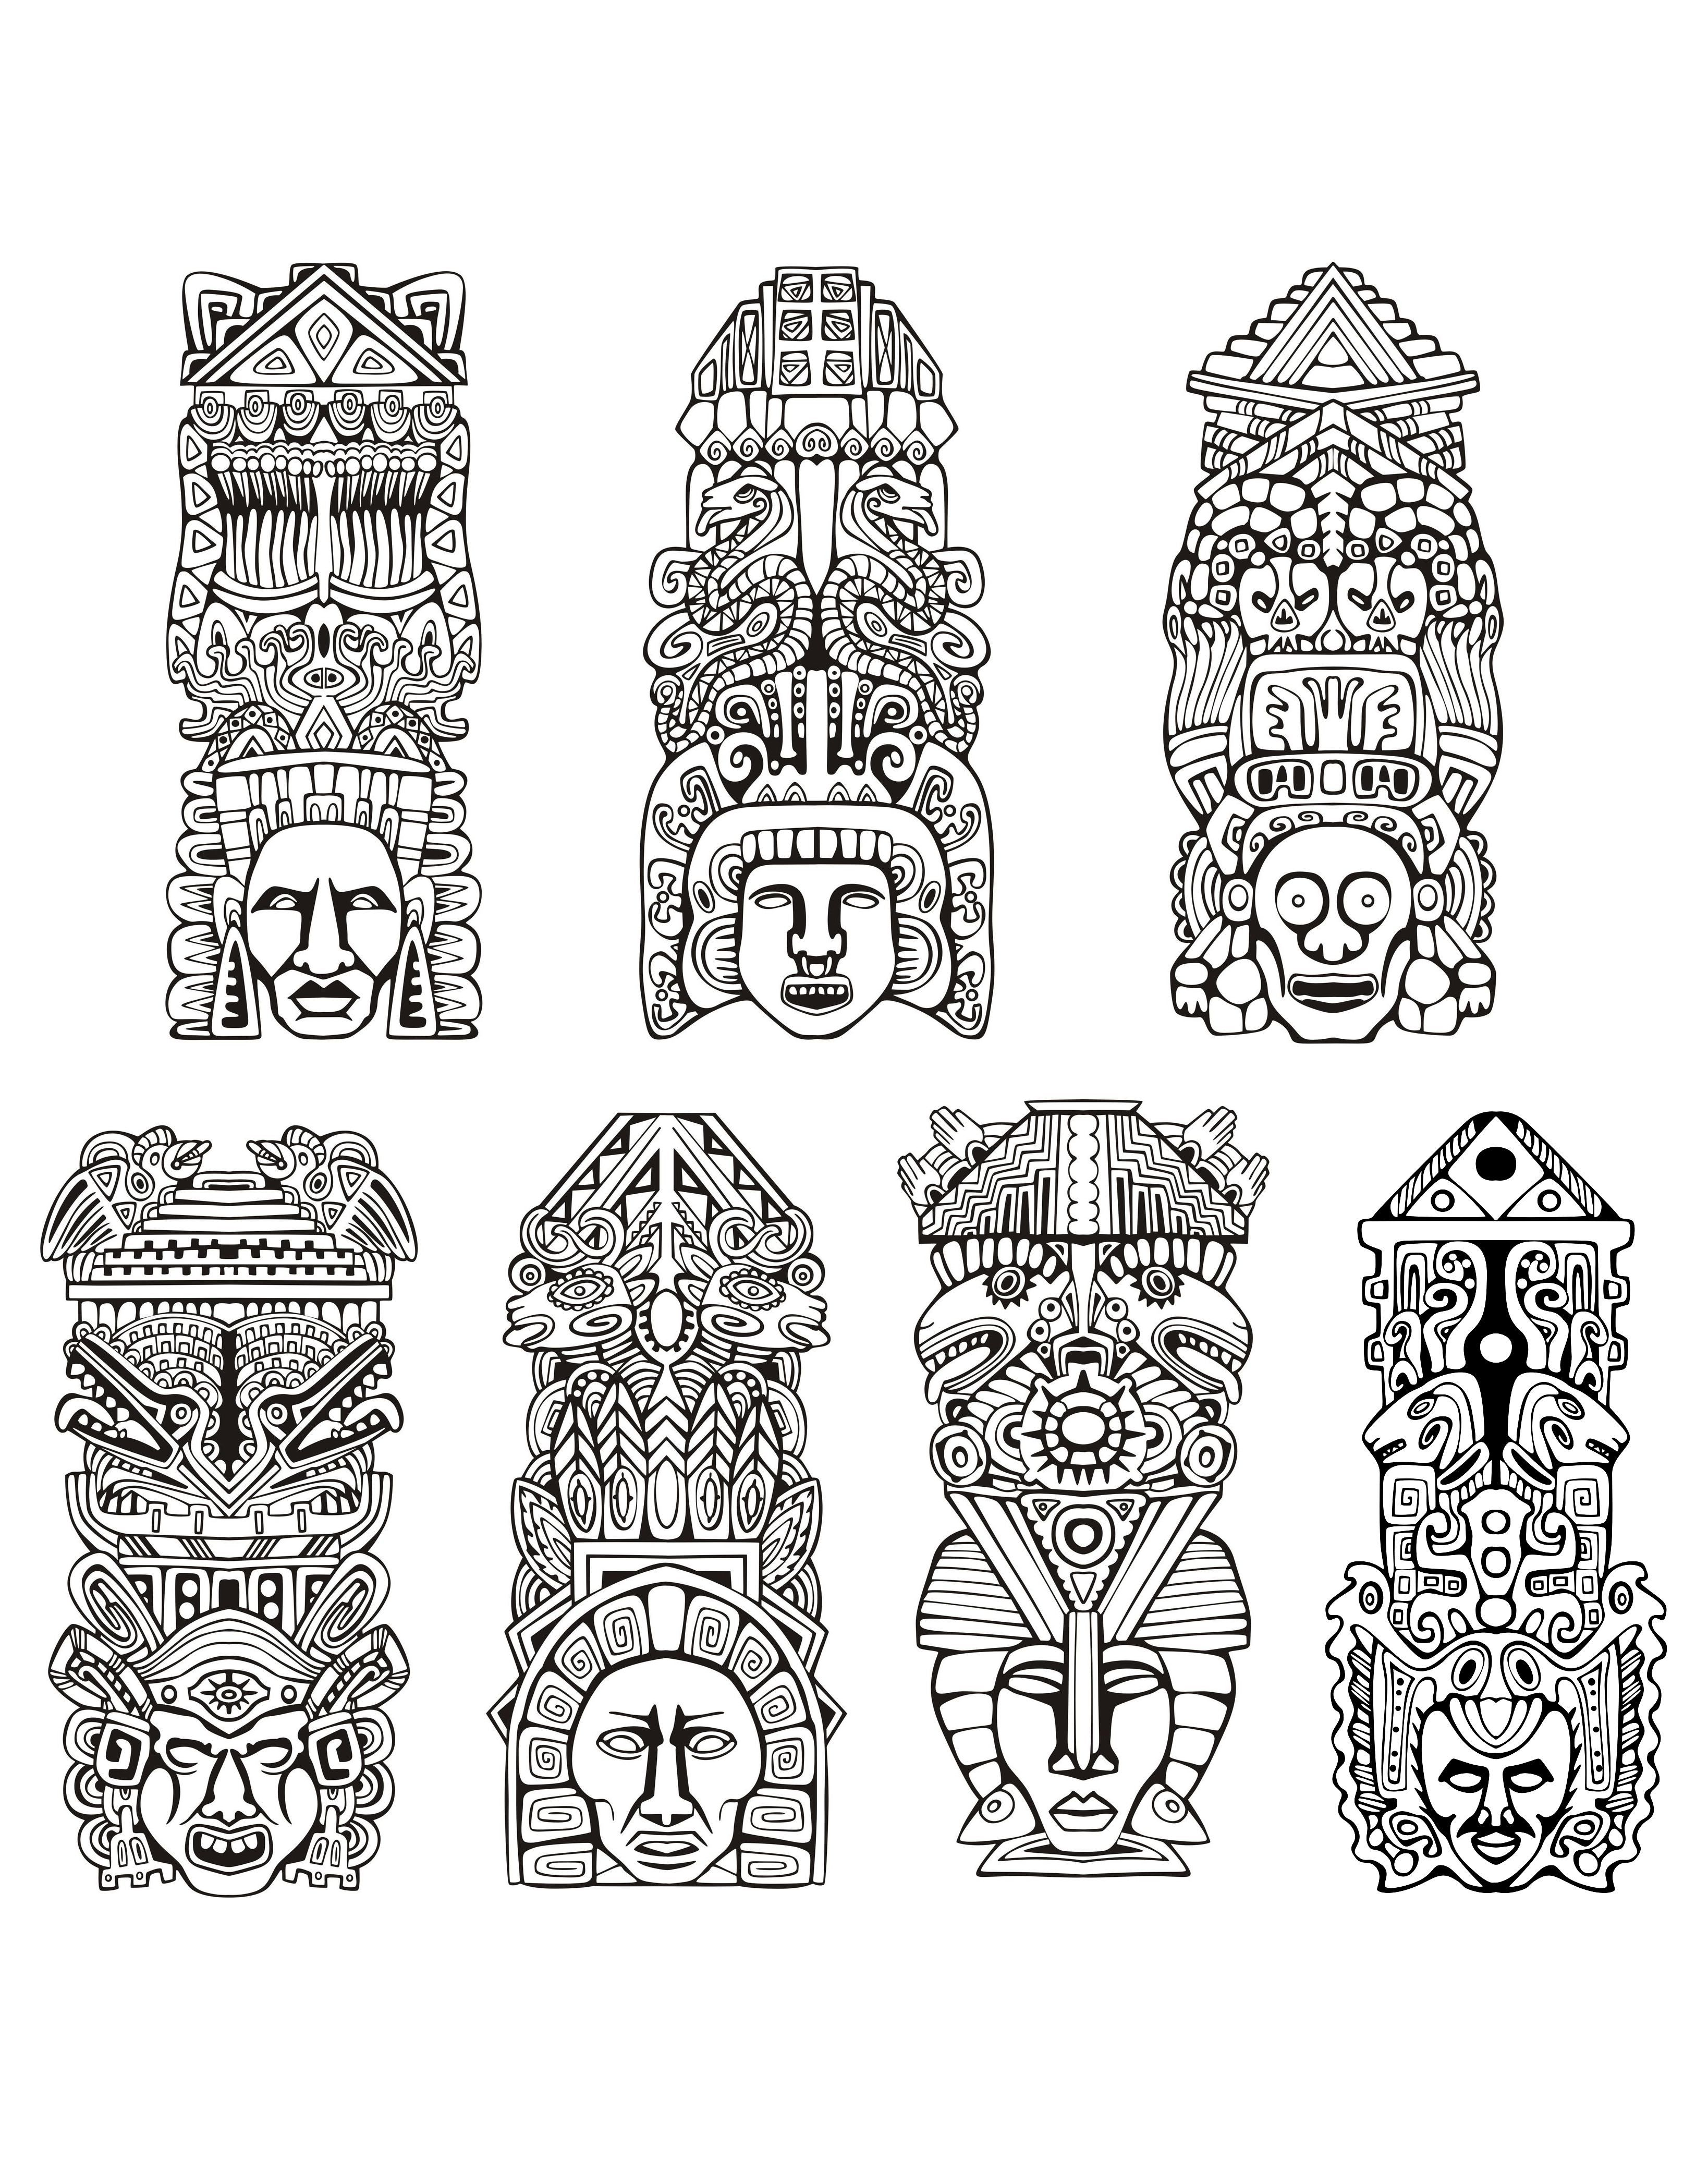 Free Coloring Page Adult Totems Inspiration Inca Mayan Aztec Inspired By Aztecs Mayans And Incas Source Rocich 123RF